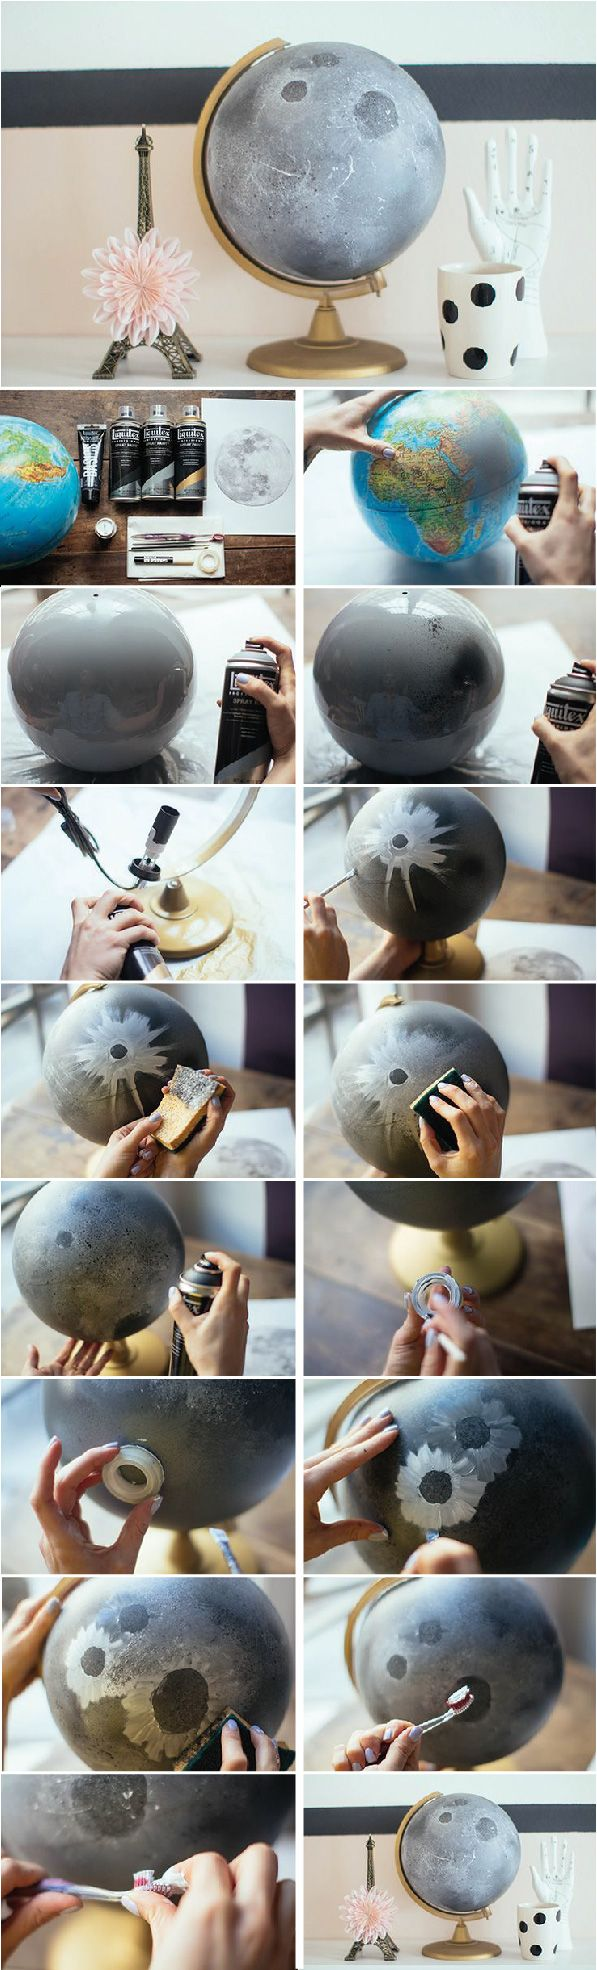 DIY painted moon globe. Turn an inexpensive globe into something new by taking the painted globe trend to the next level.